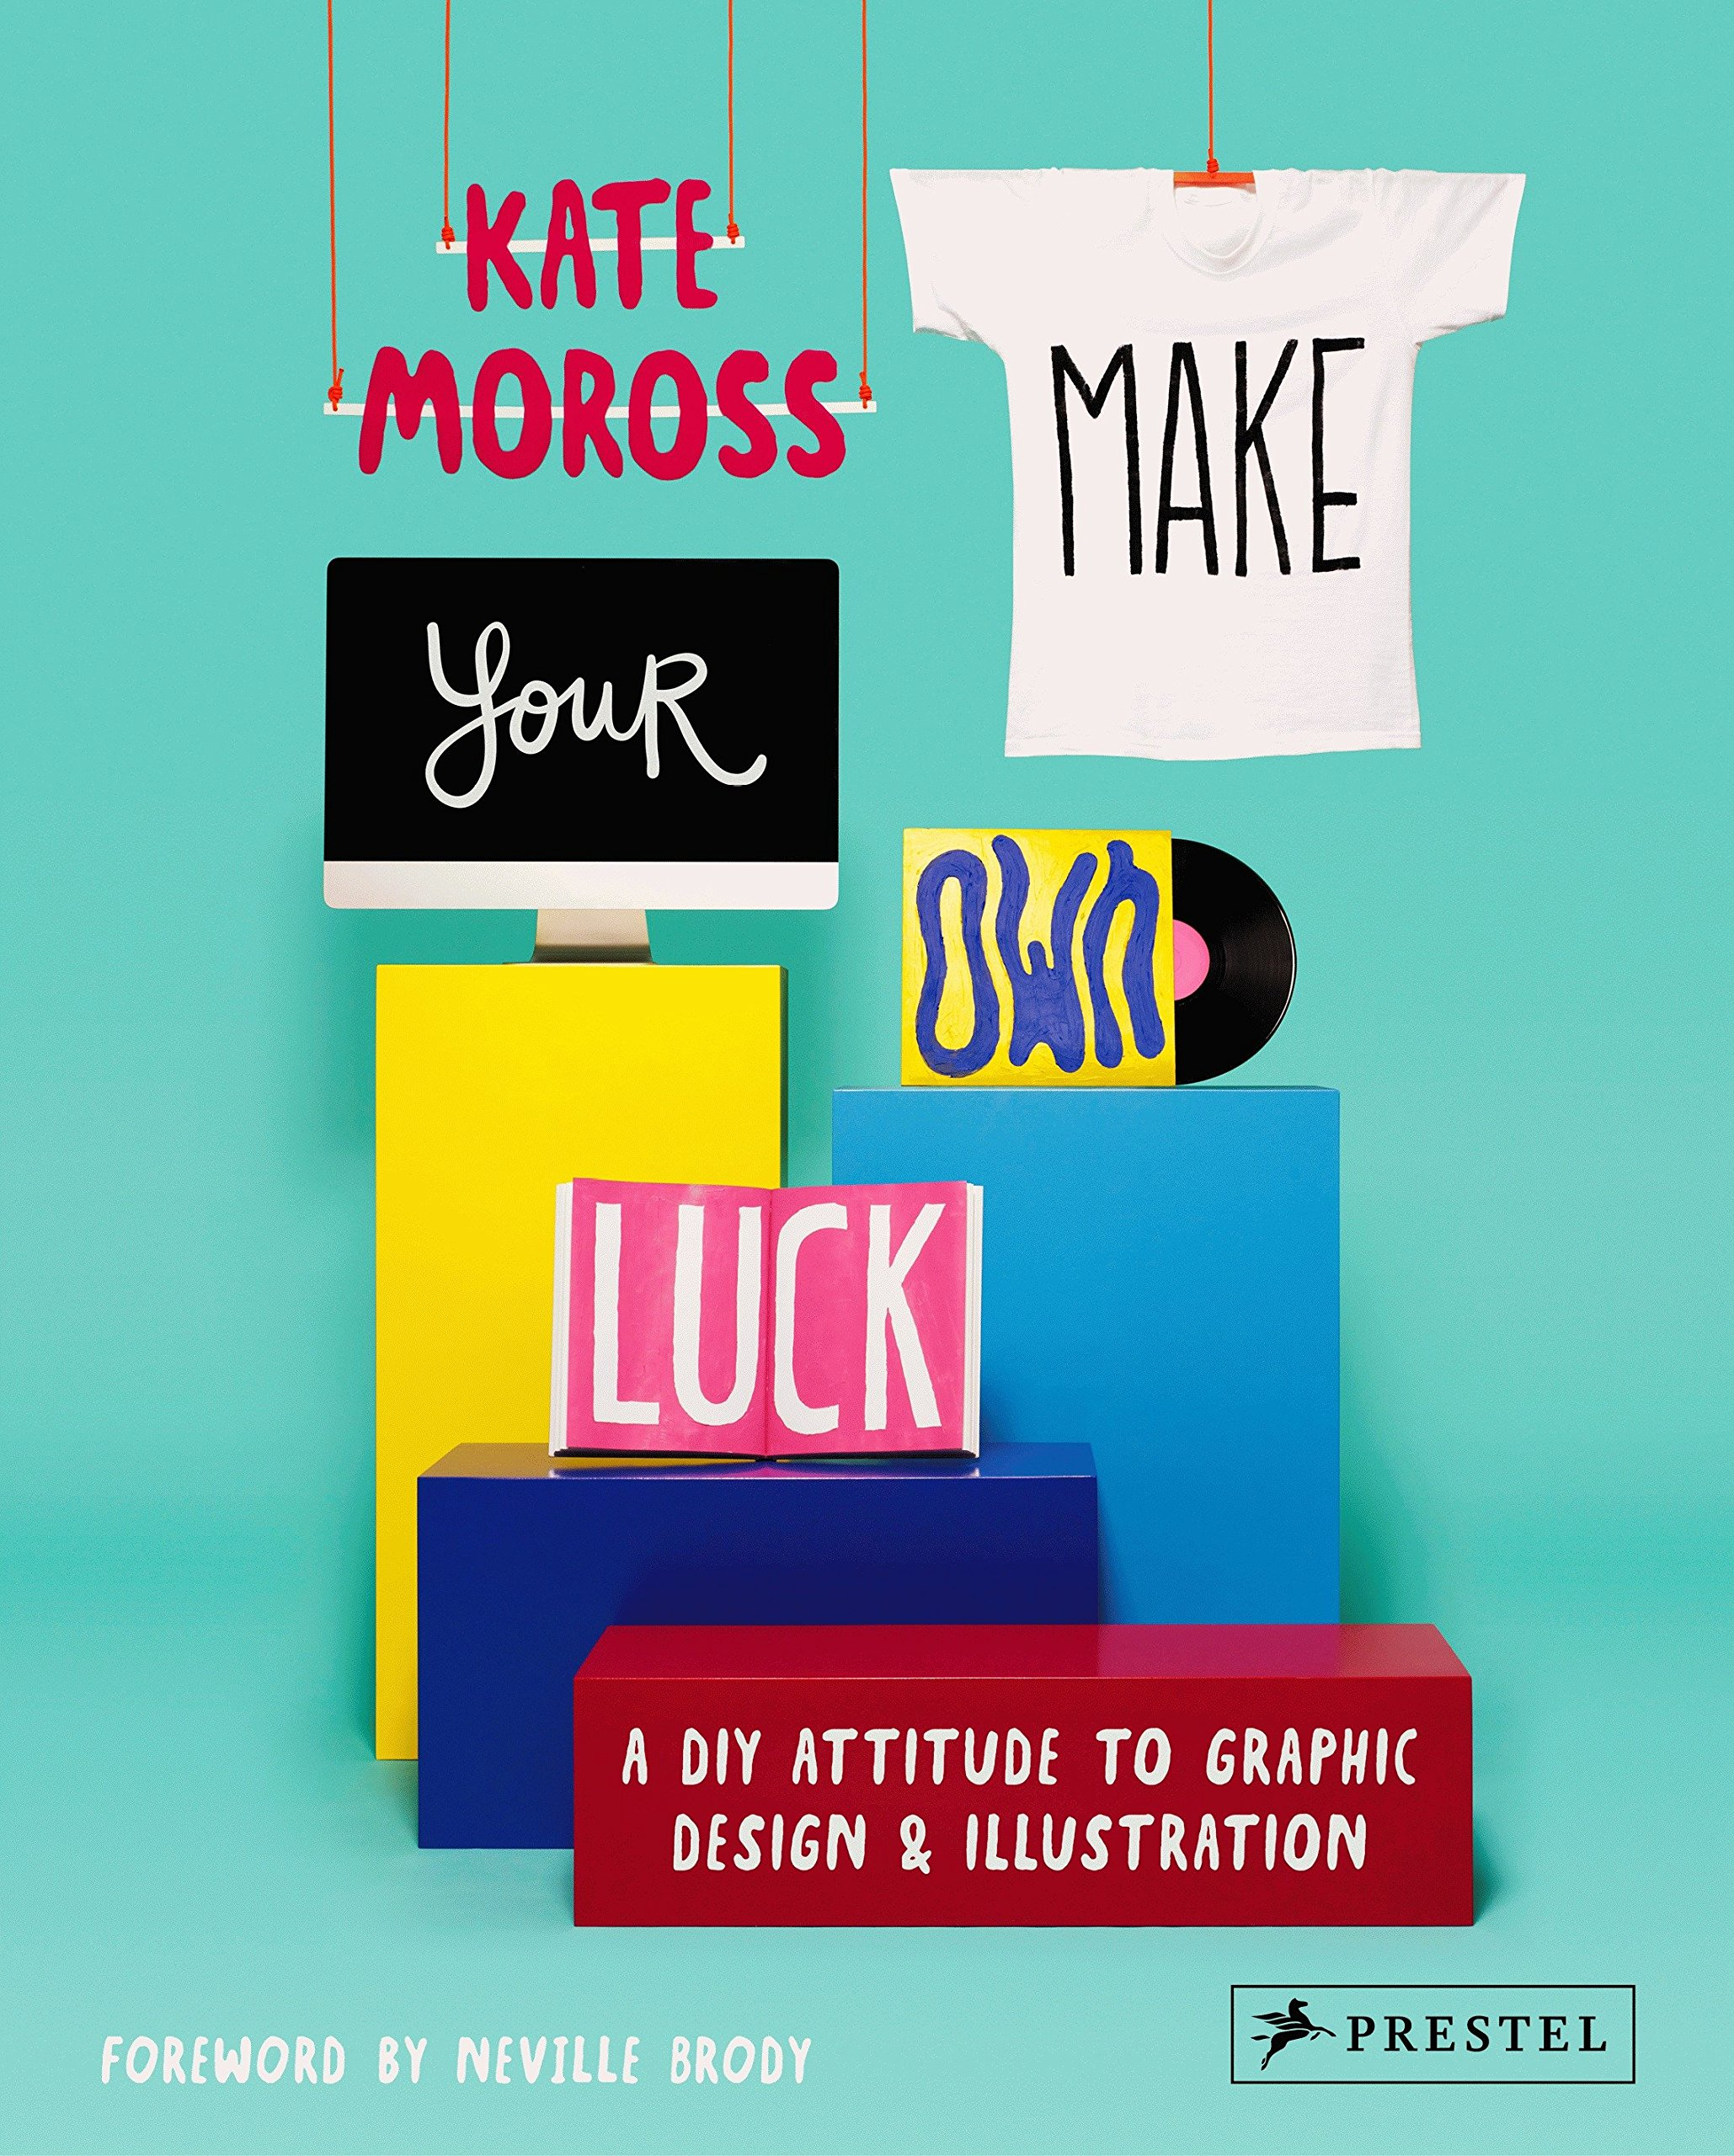 Make Your Own Luck: A DIY Attitude to Graphic Design and Illustration by Prestel